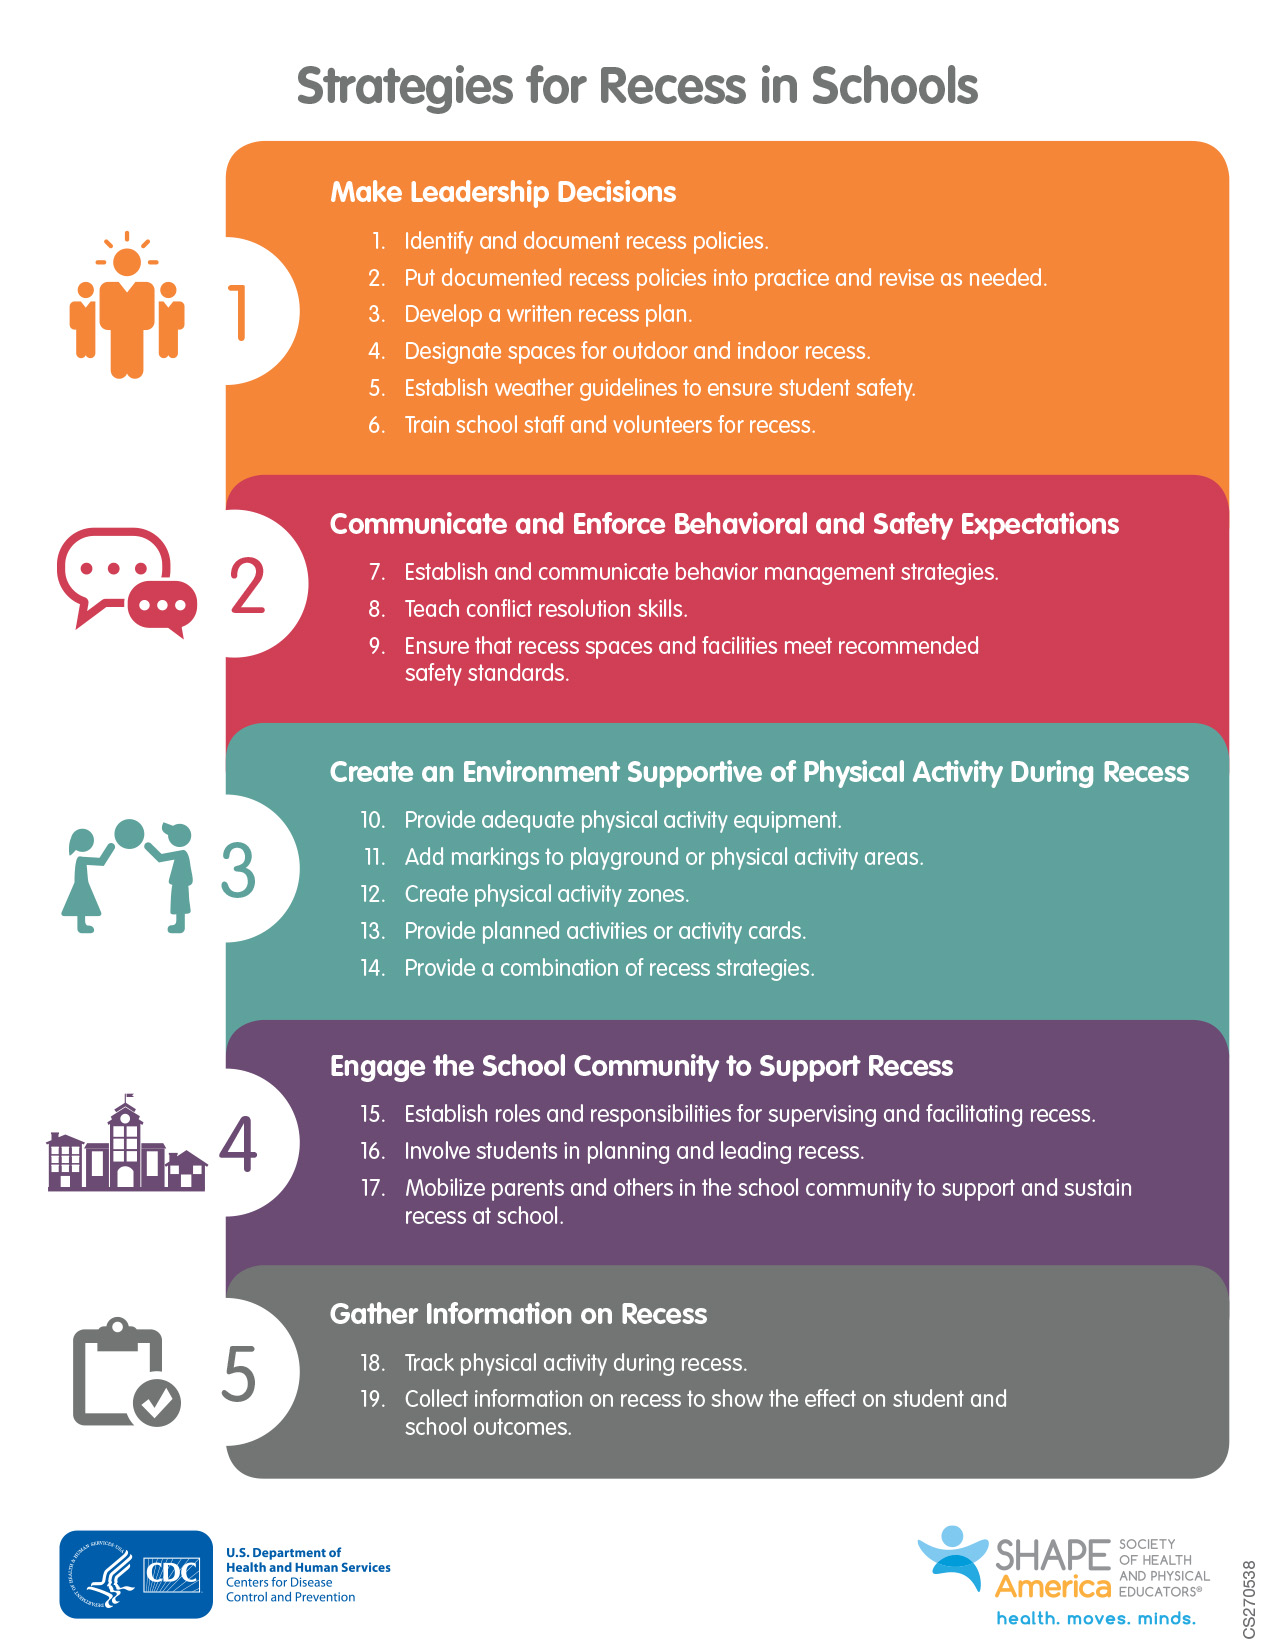 There are 5 broad strategy categories for schools to consider to improve recess. Each category includes strategies that can be implemented by school staff or groups in the school that are responsible for leading recess. A total of 19 strategies have been identified under the five categories. These strategies are an integral part of recess planning and should increase physical activity, positive behavior during recess, and improve behavior and engagement in the classroom.